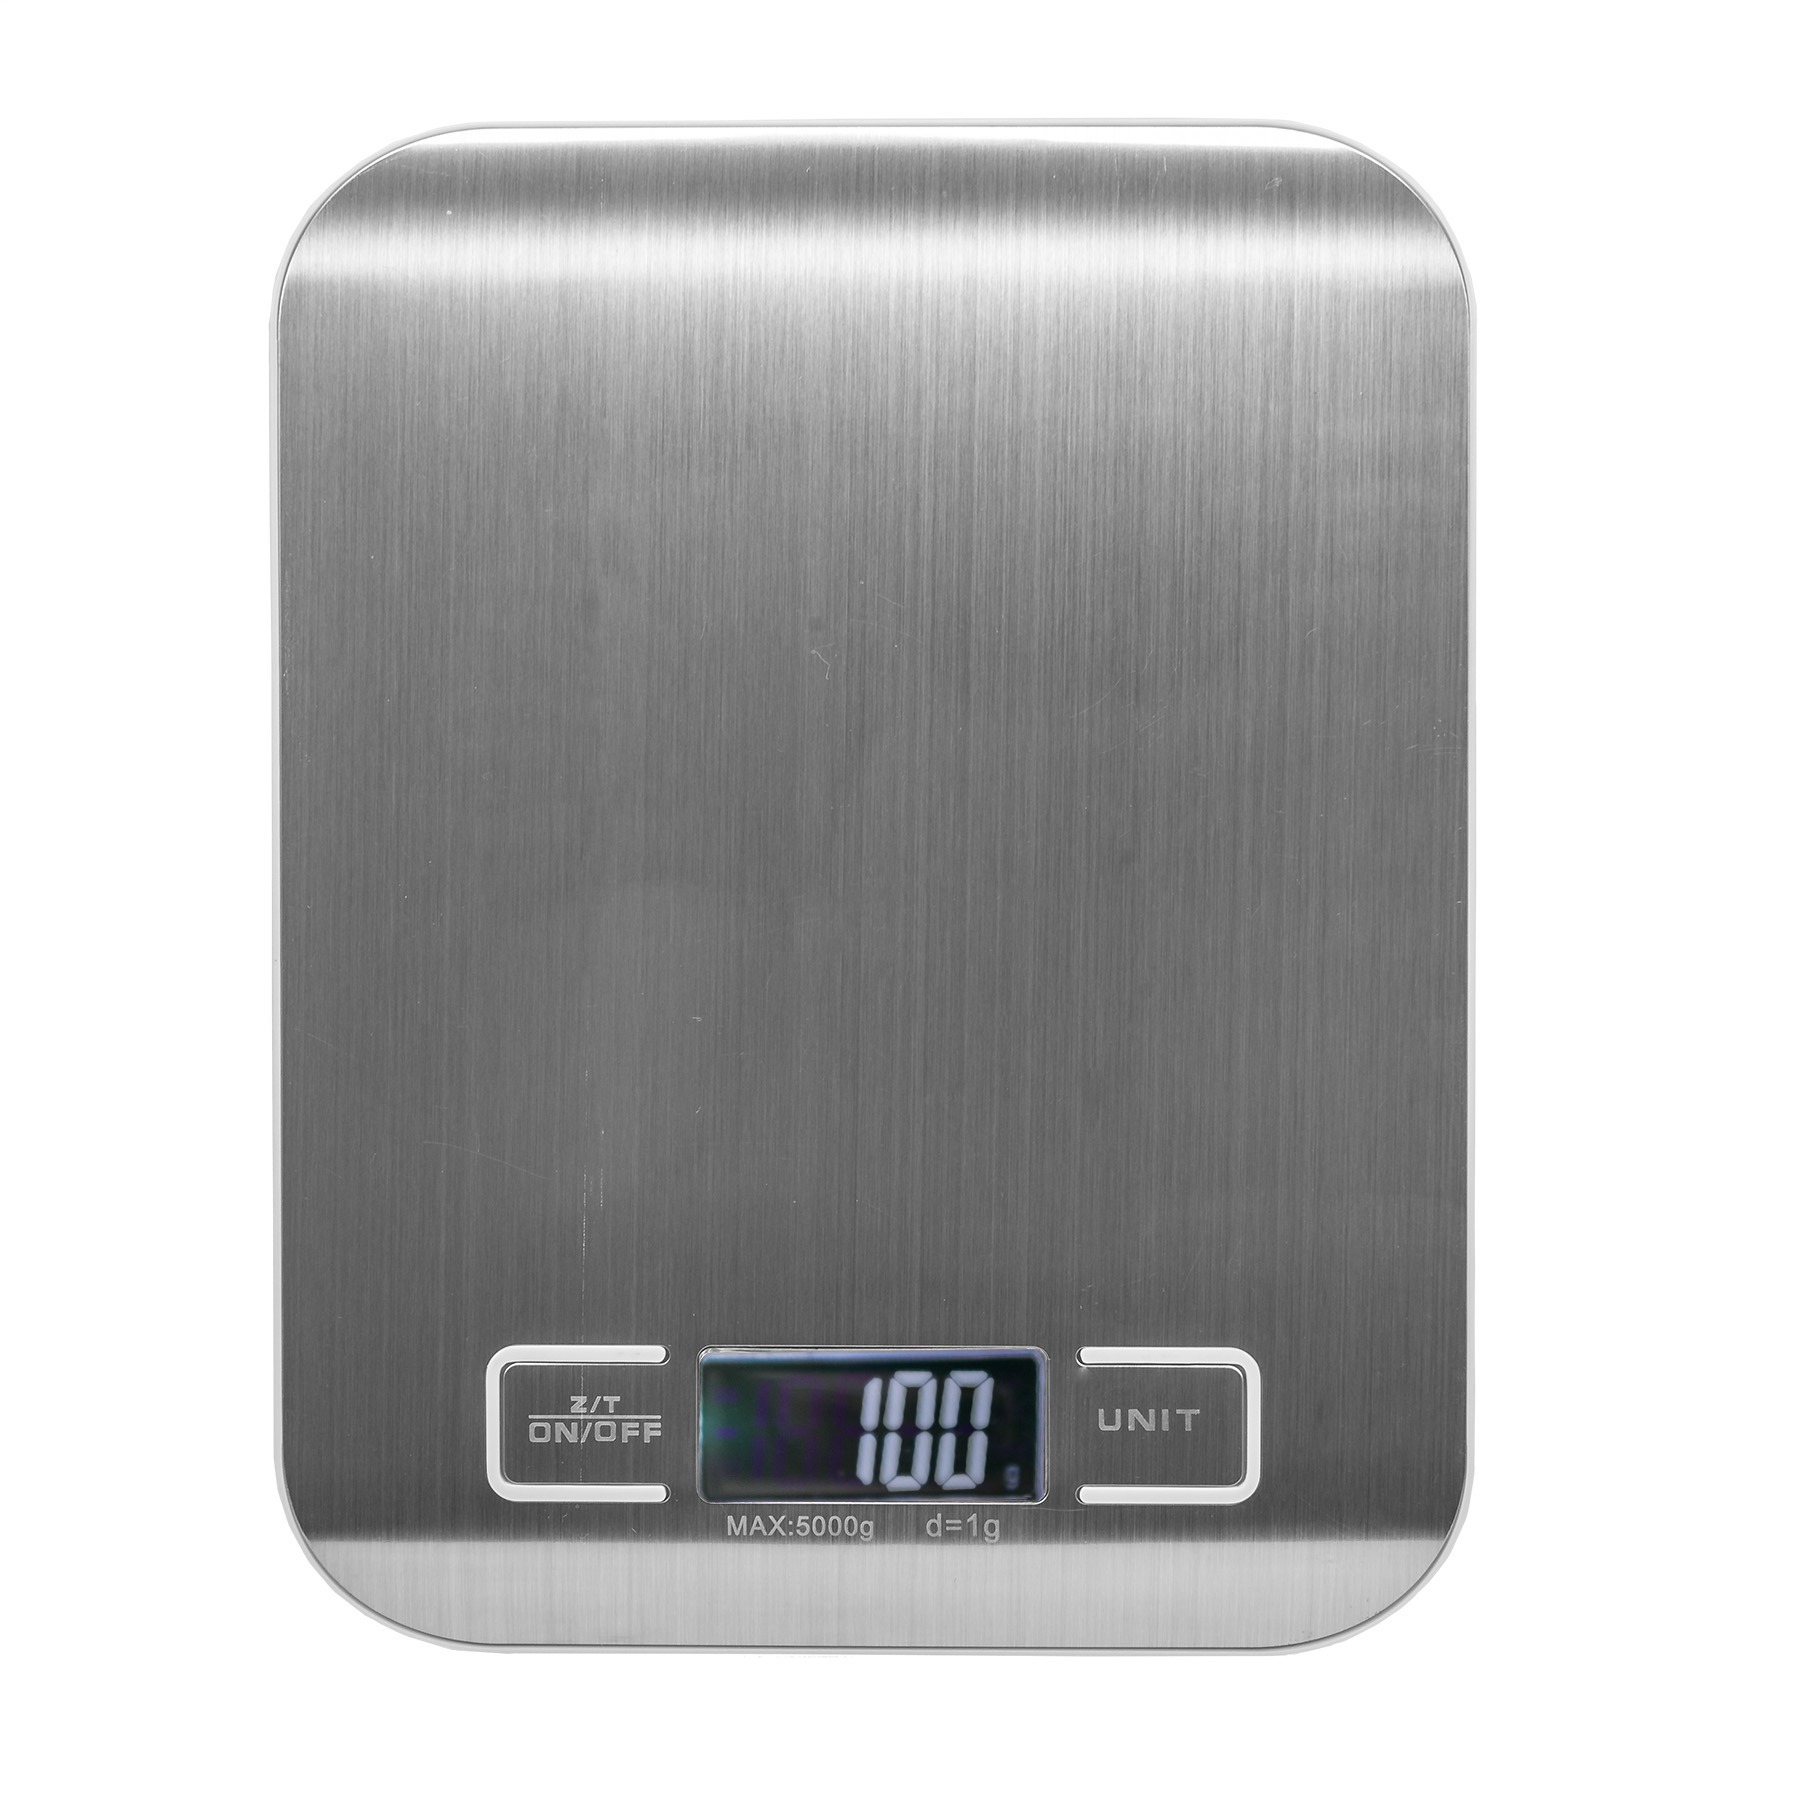 11lb   5kg Digital Kitchen Food Scale Stainless Steel Platform With LCD Display by